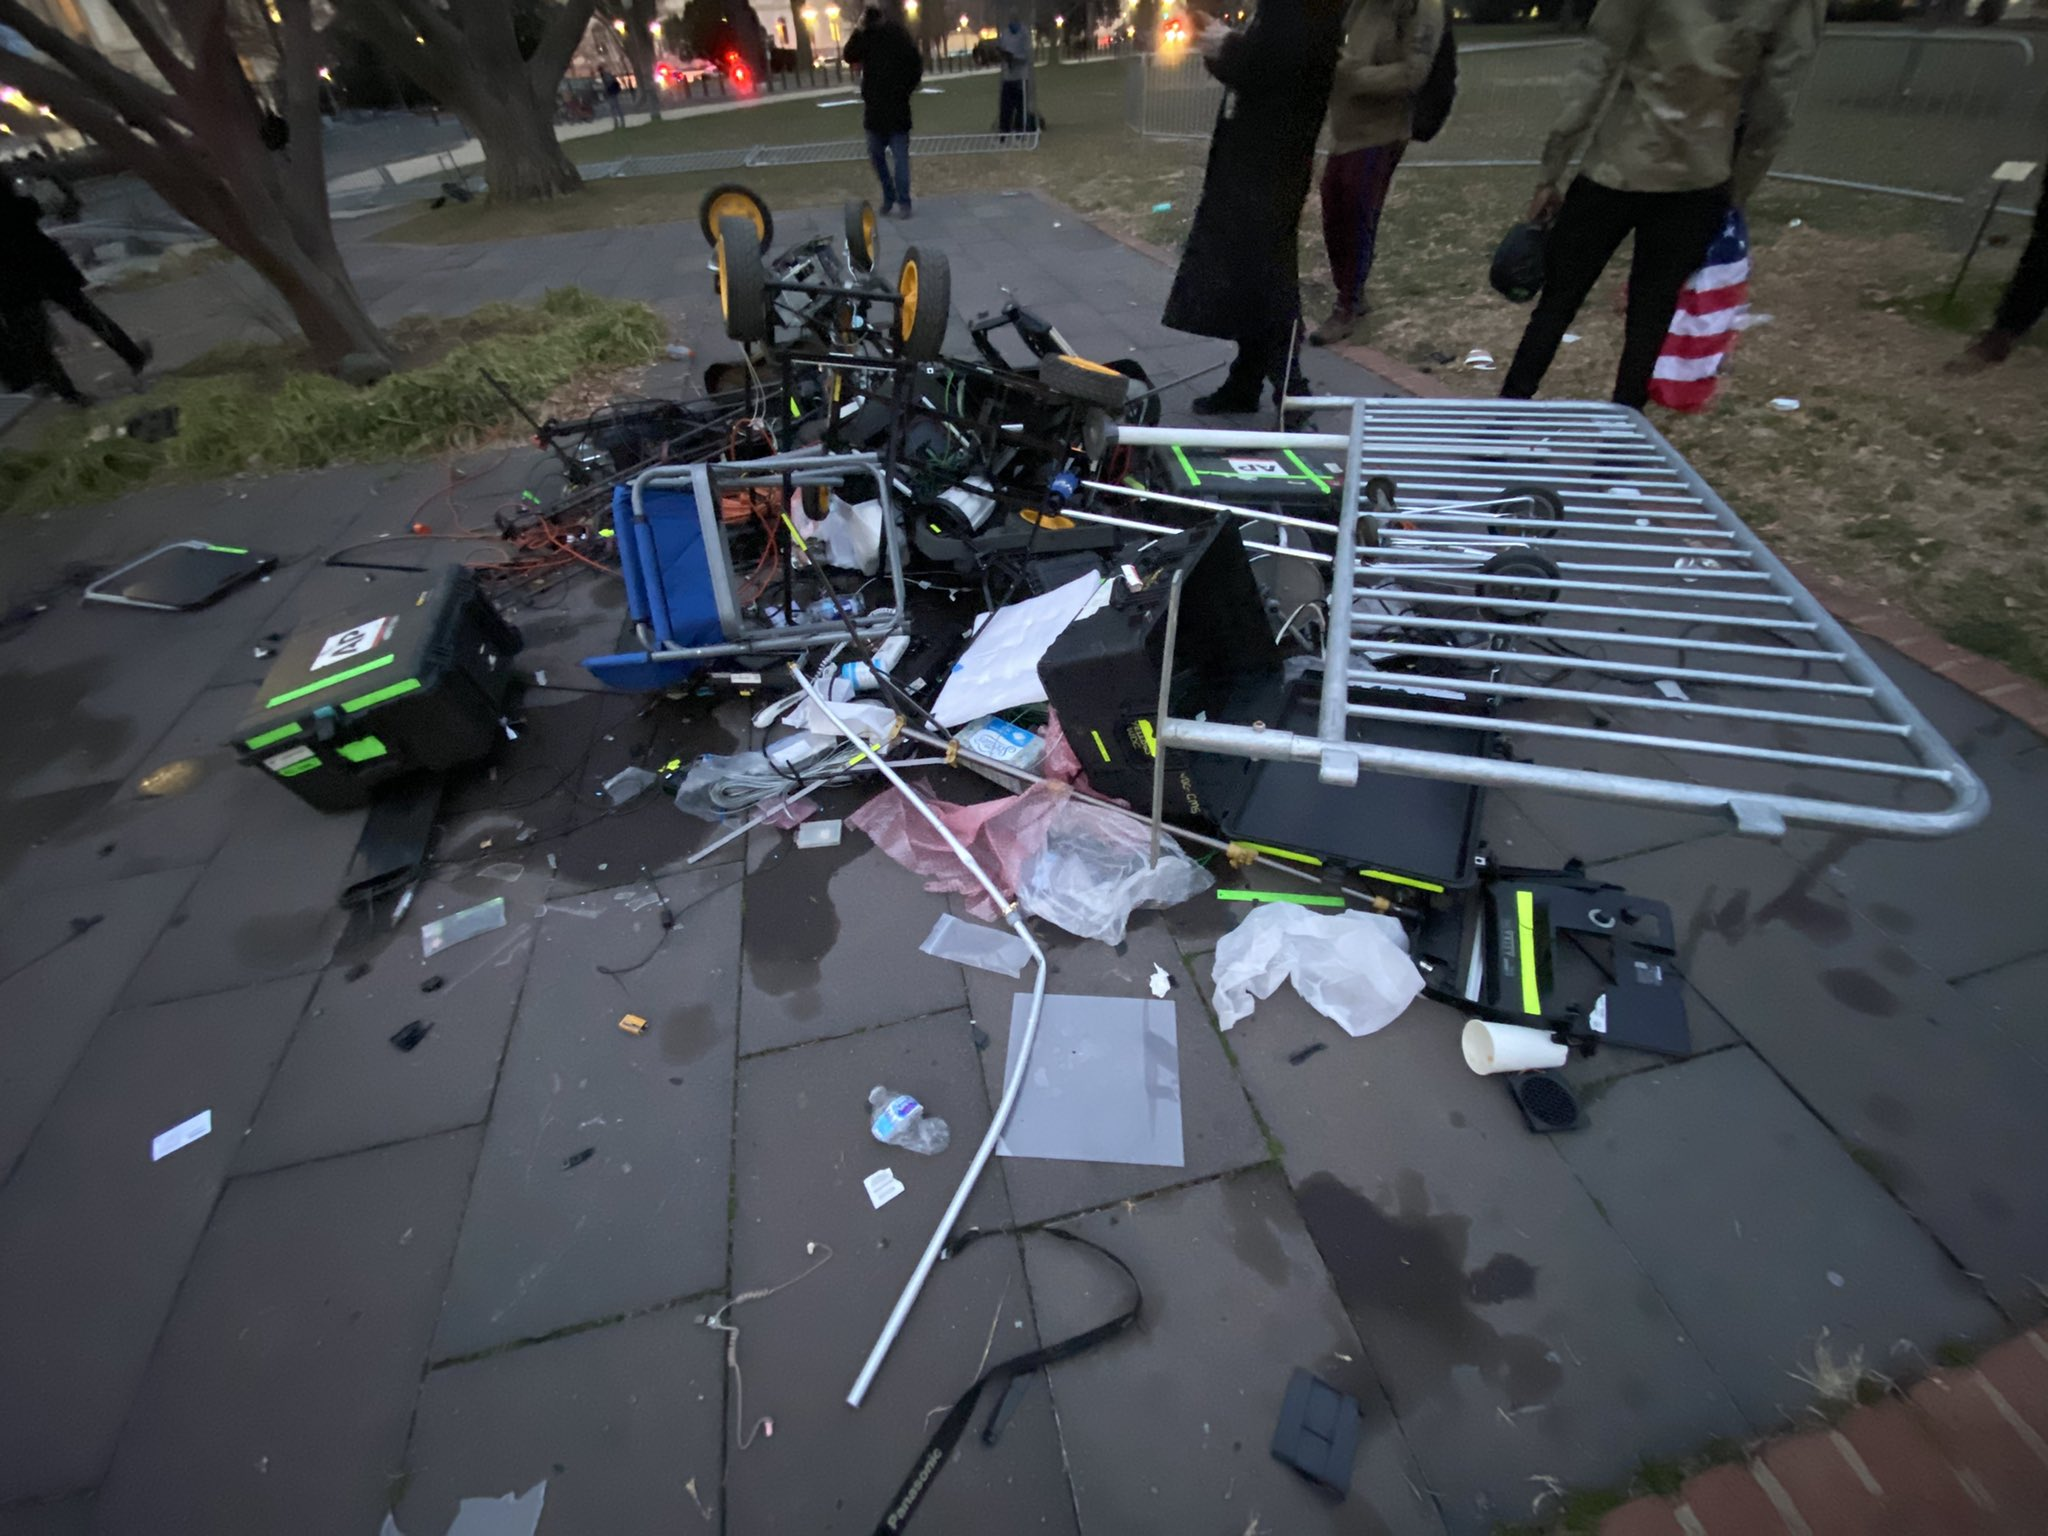 TV reporter camera equipment destroyed and trashed in front of US Capitol Building.